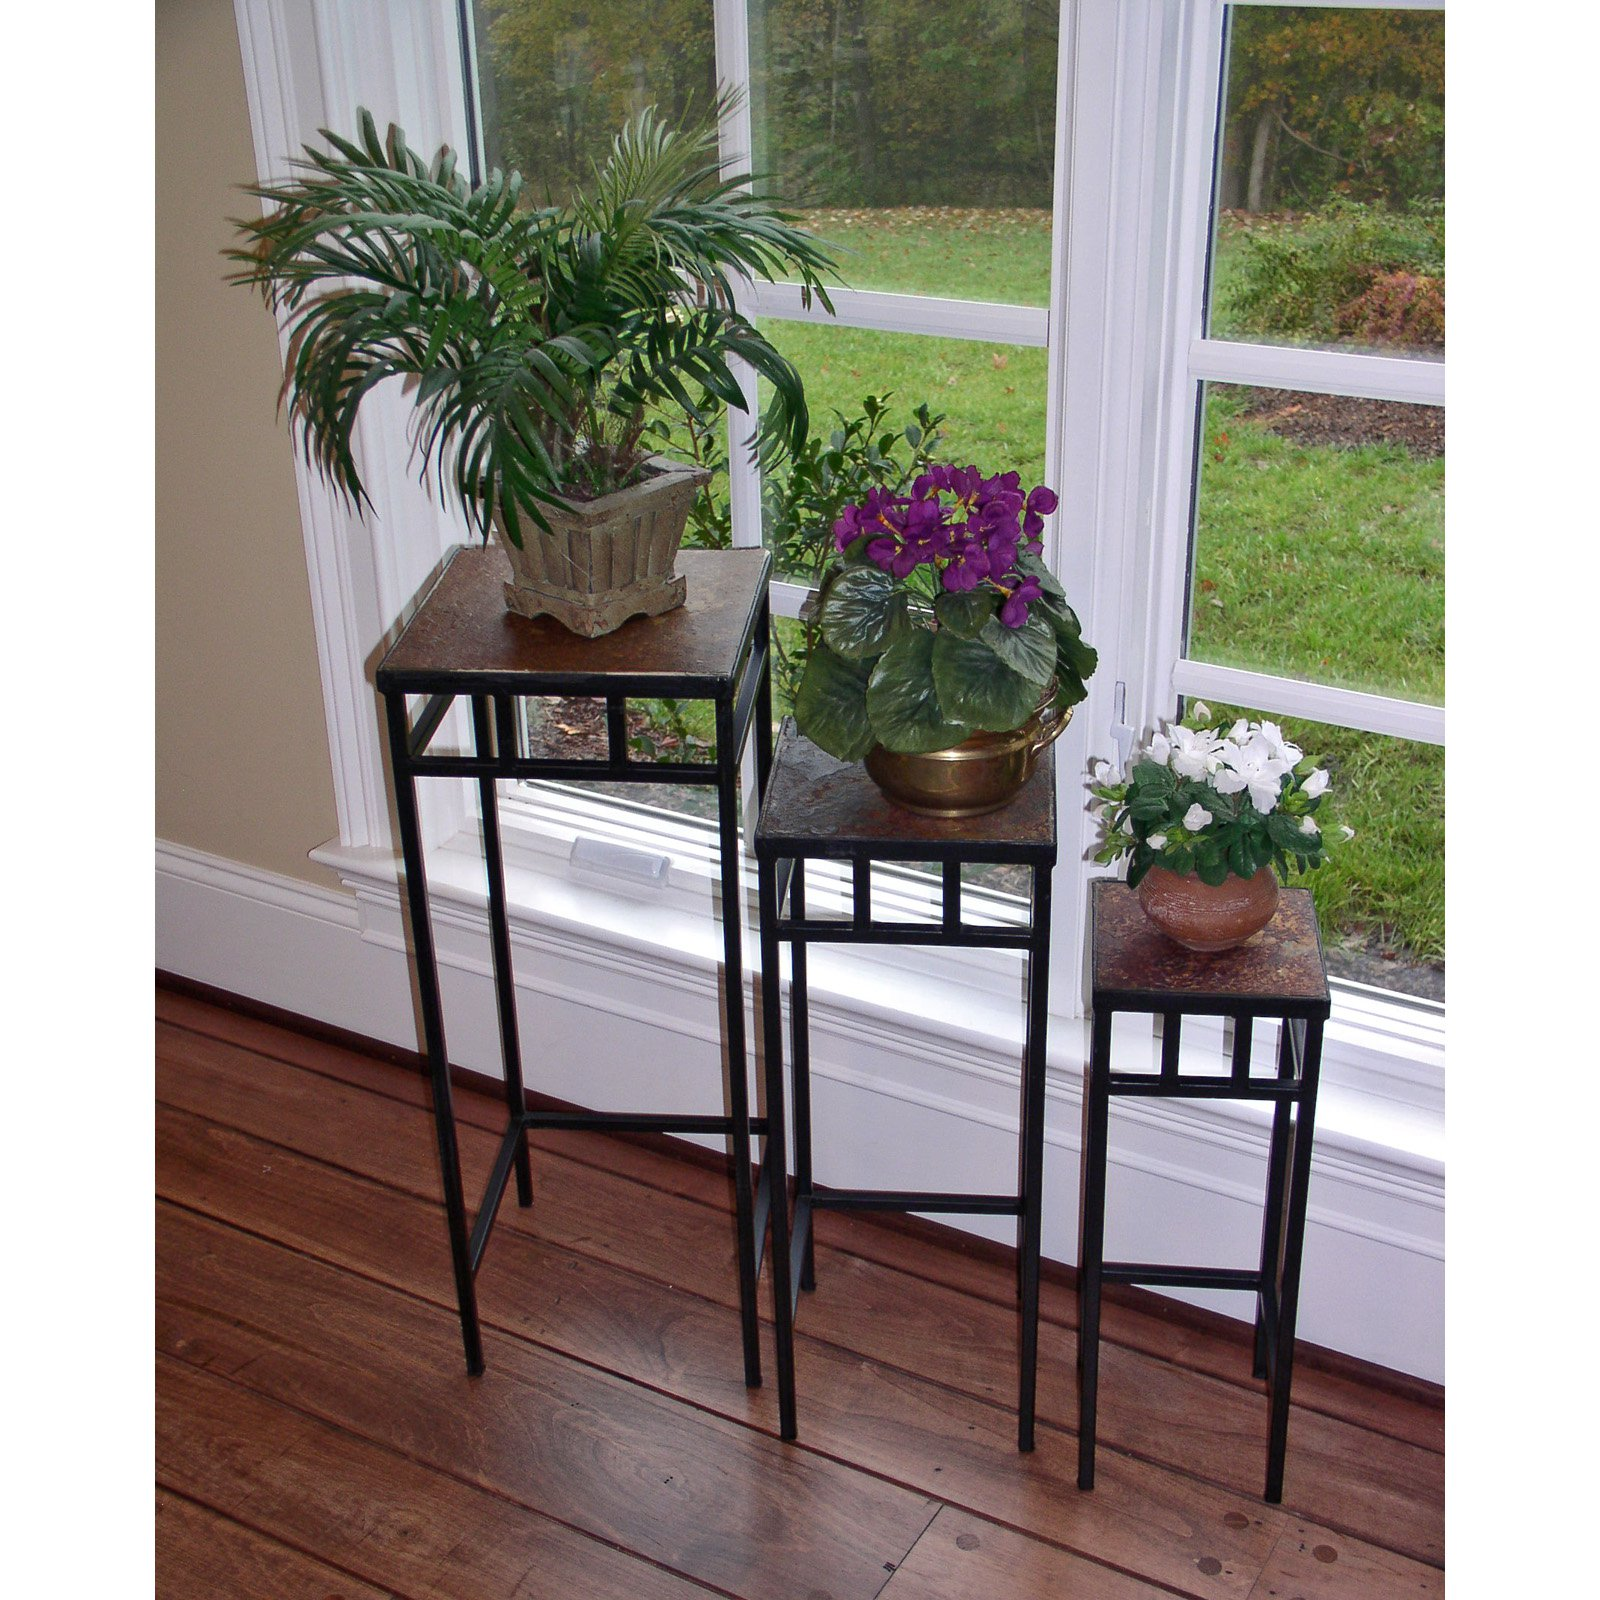 4D Concepts Slate Top Plant Stands - Set of 3